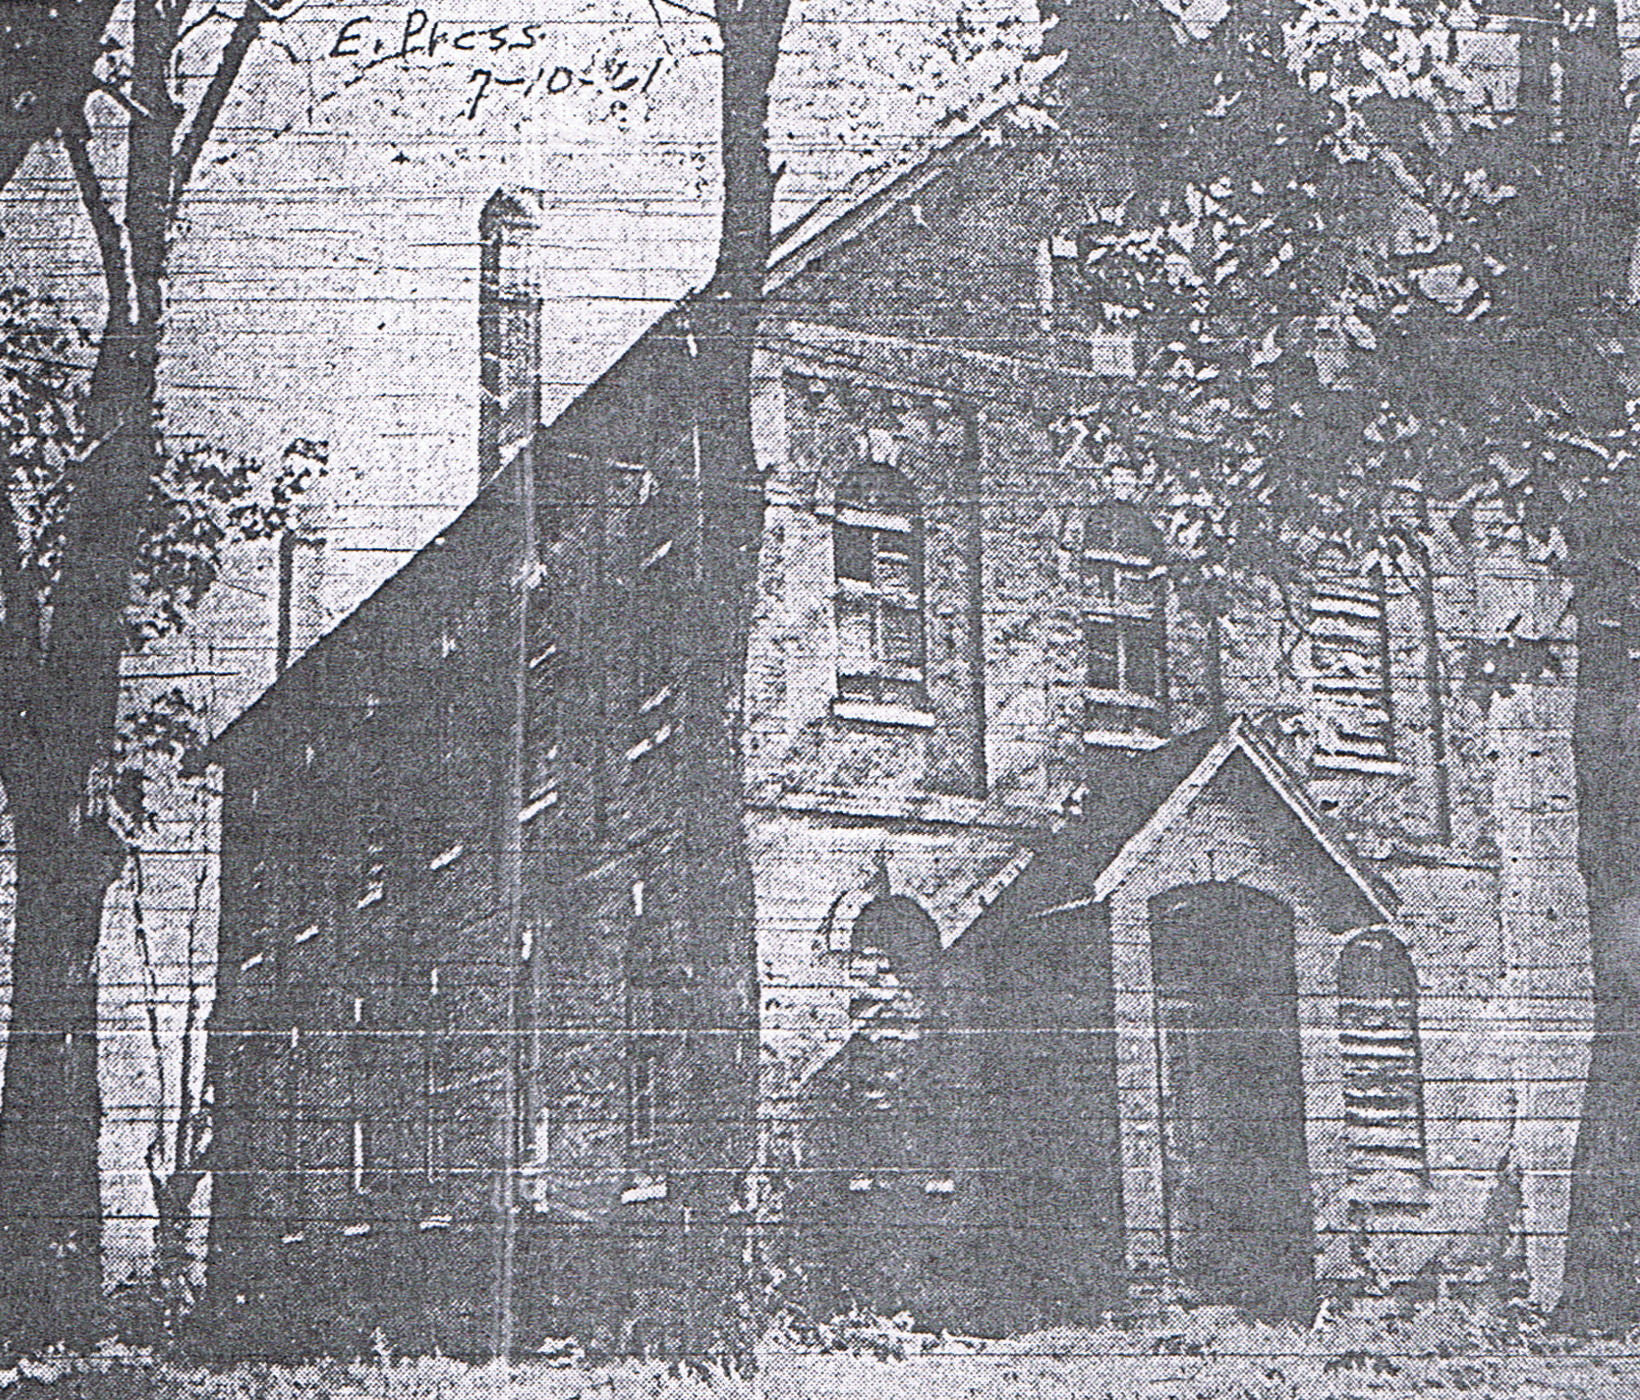 Pigeon Township School No. 2